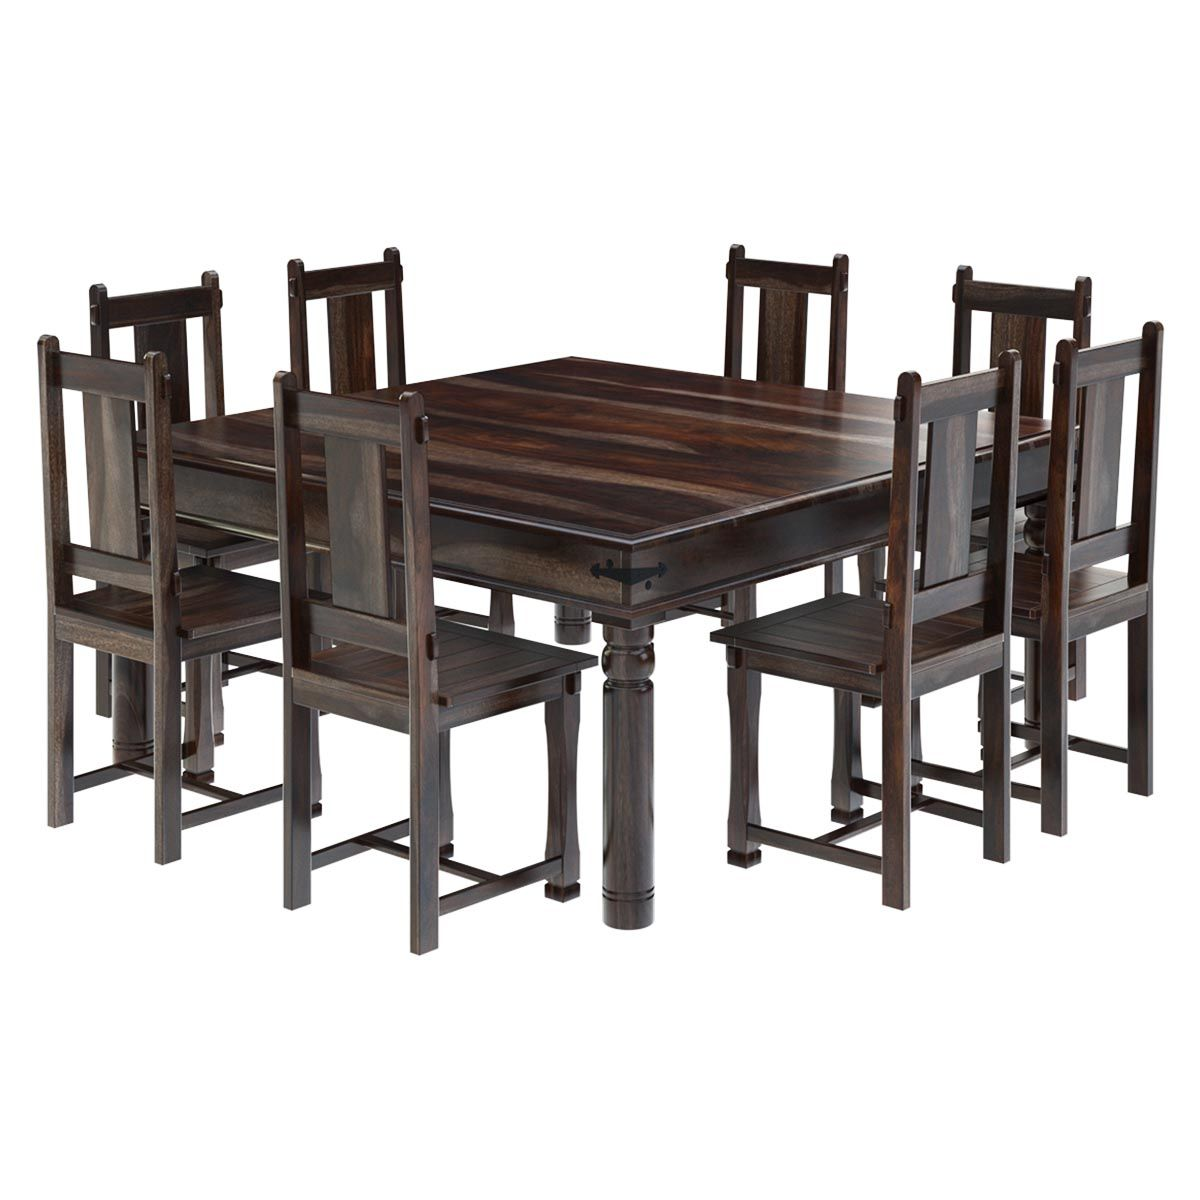 Adorn Your Dining Space With This Marvelous Richmond Rustic Solid Wood Large Square Room Table Chair SetThis Set Is Crafted Using